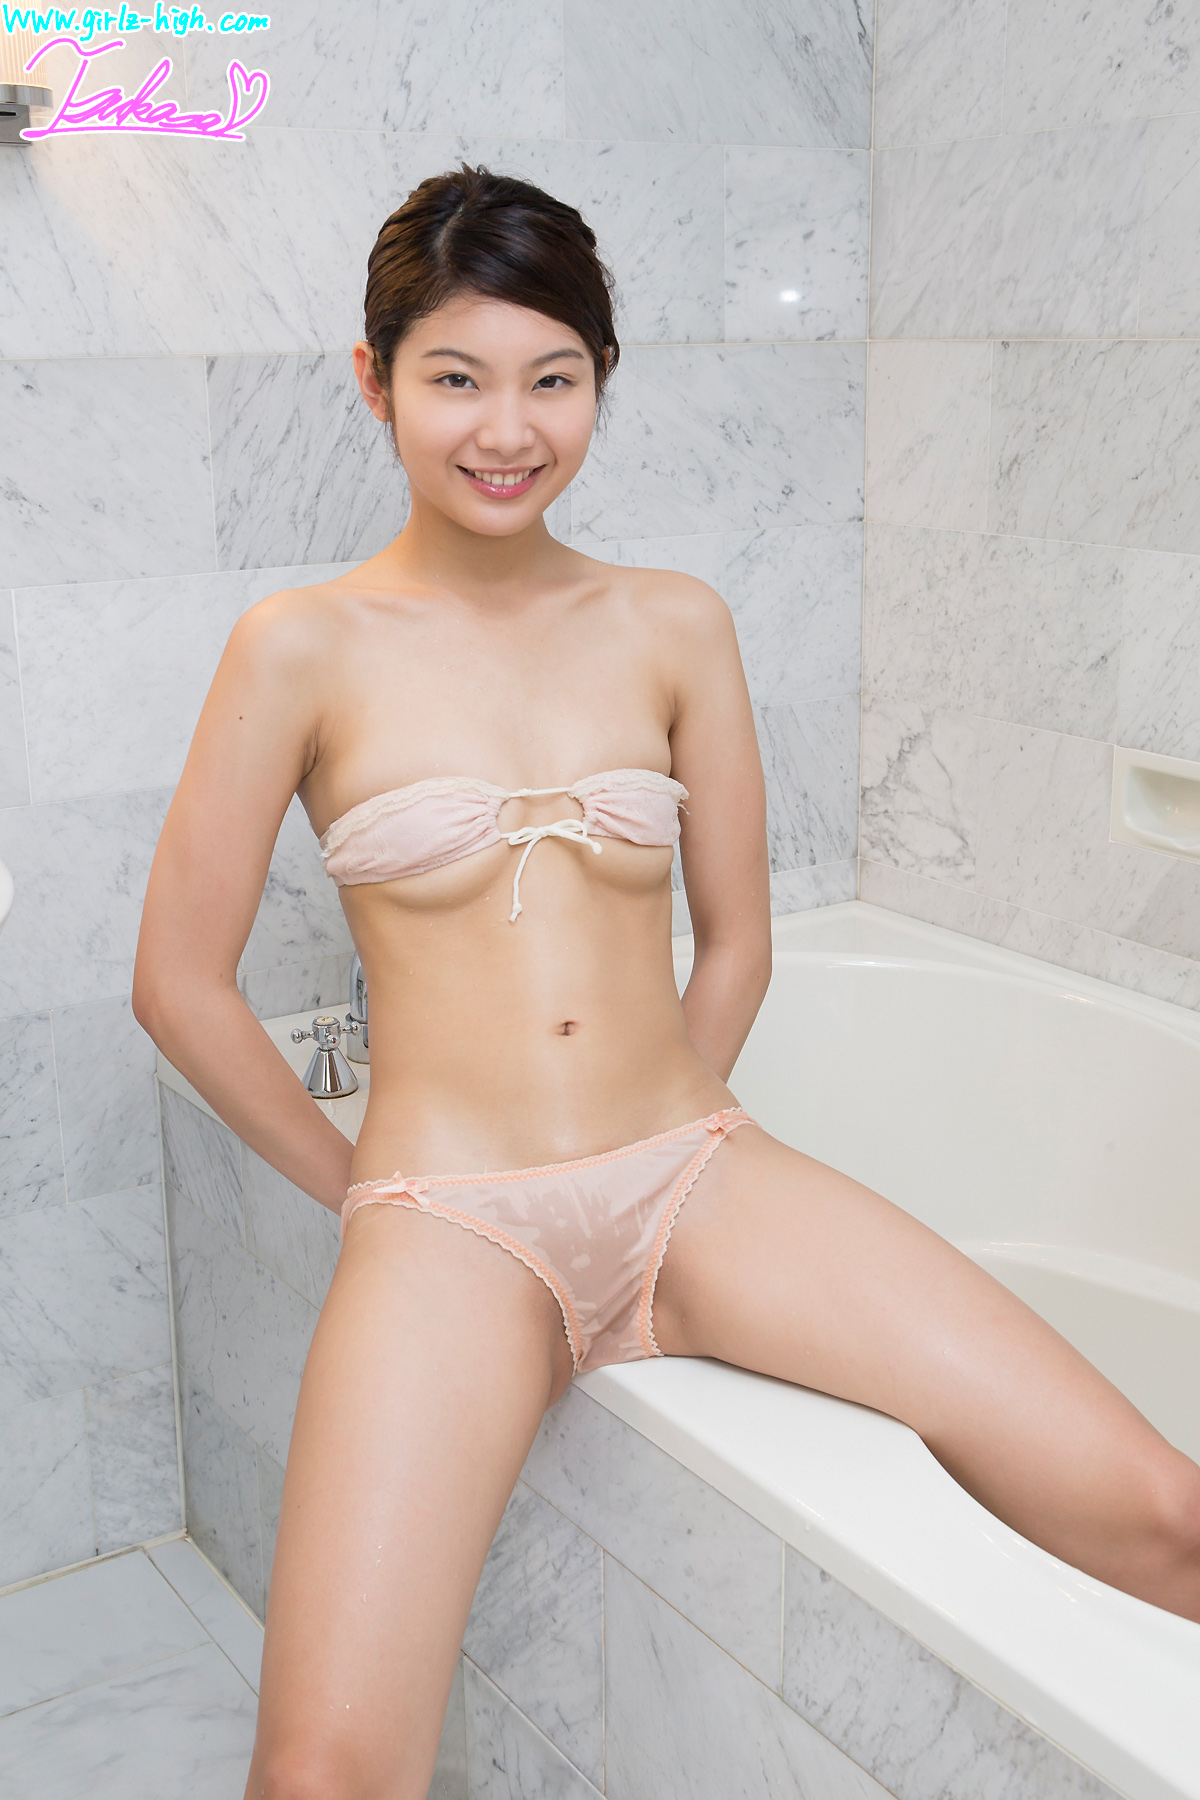 images and videos of naked and sex